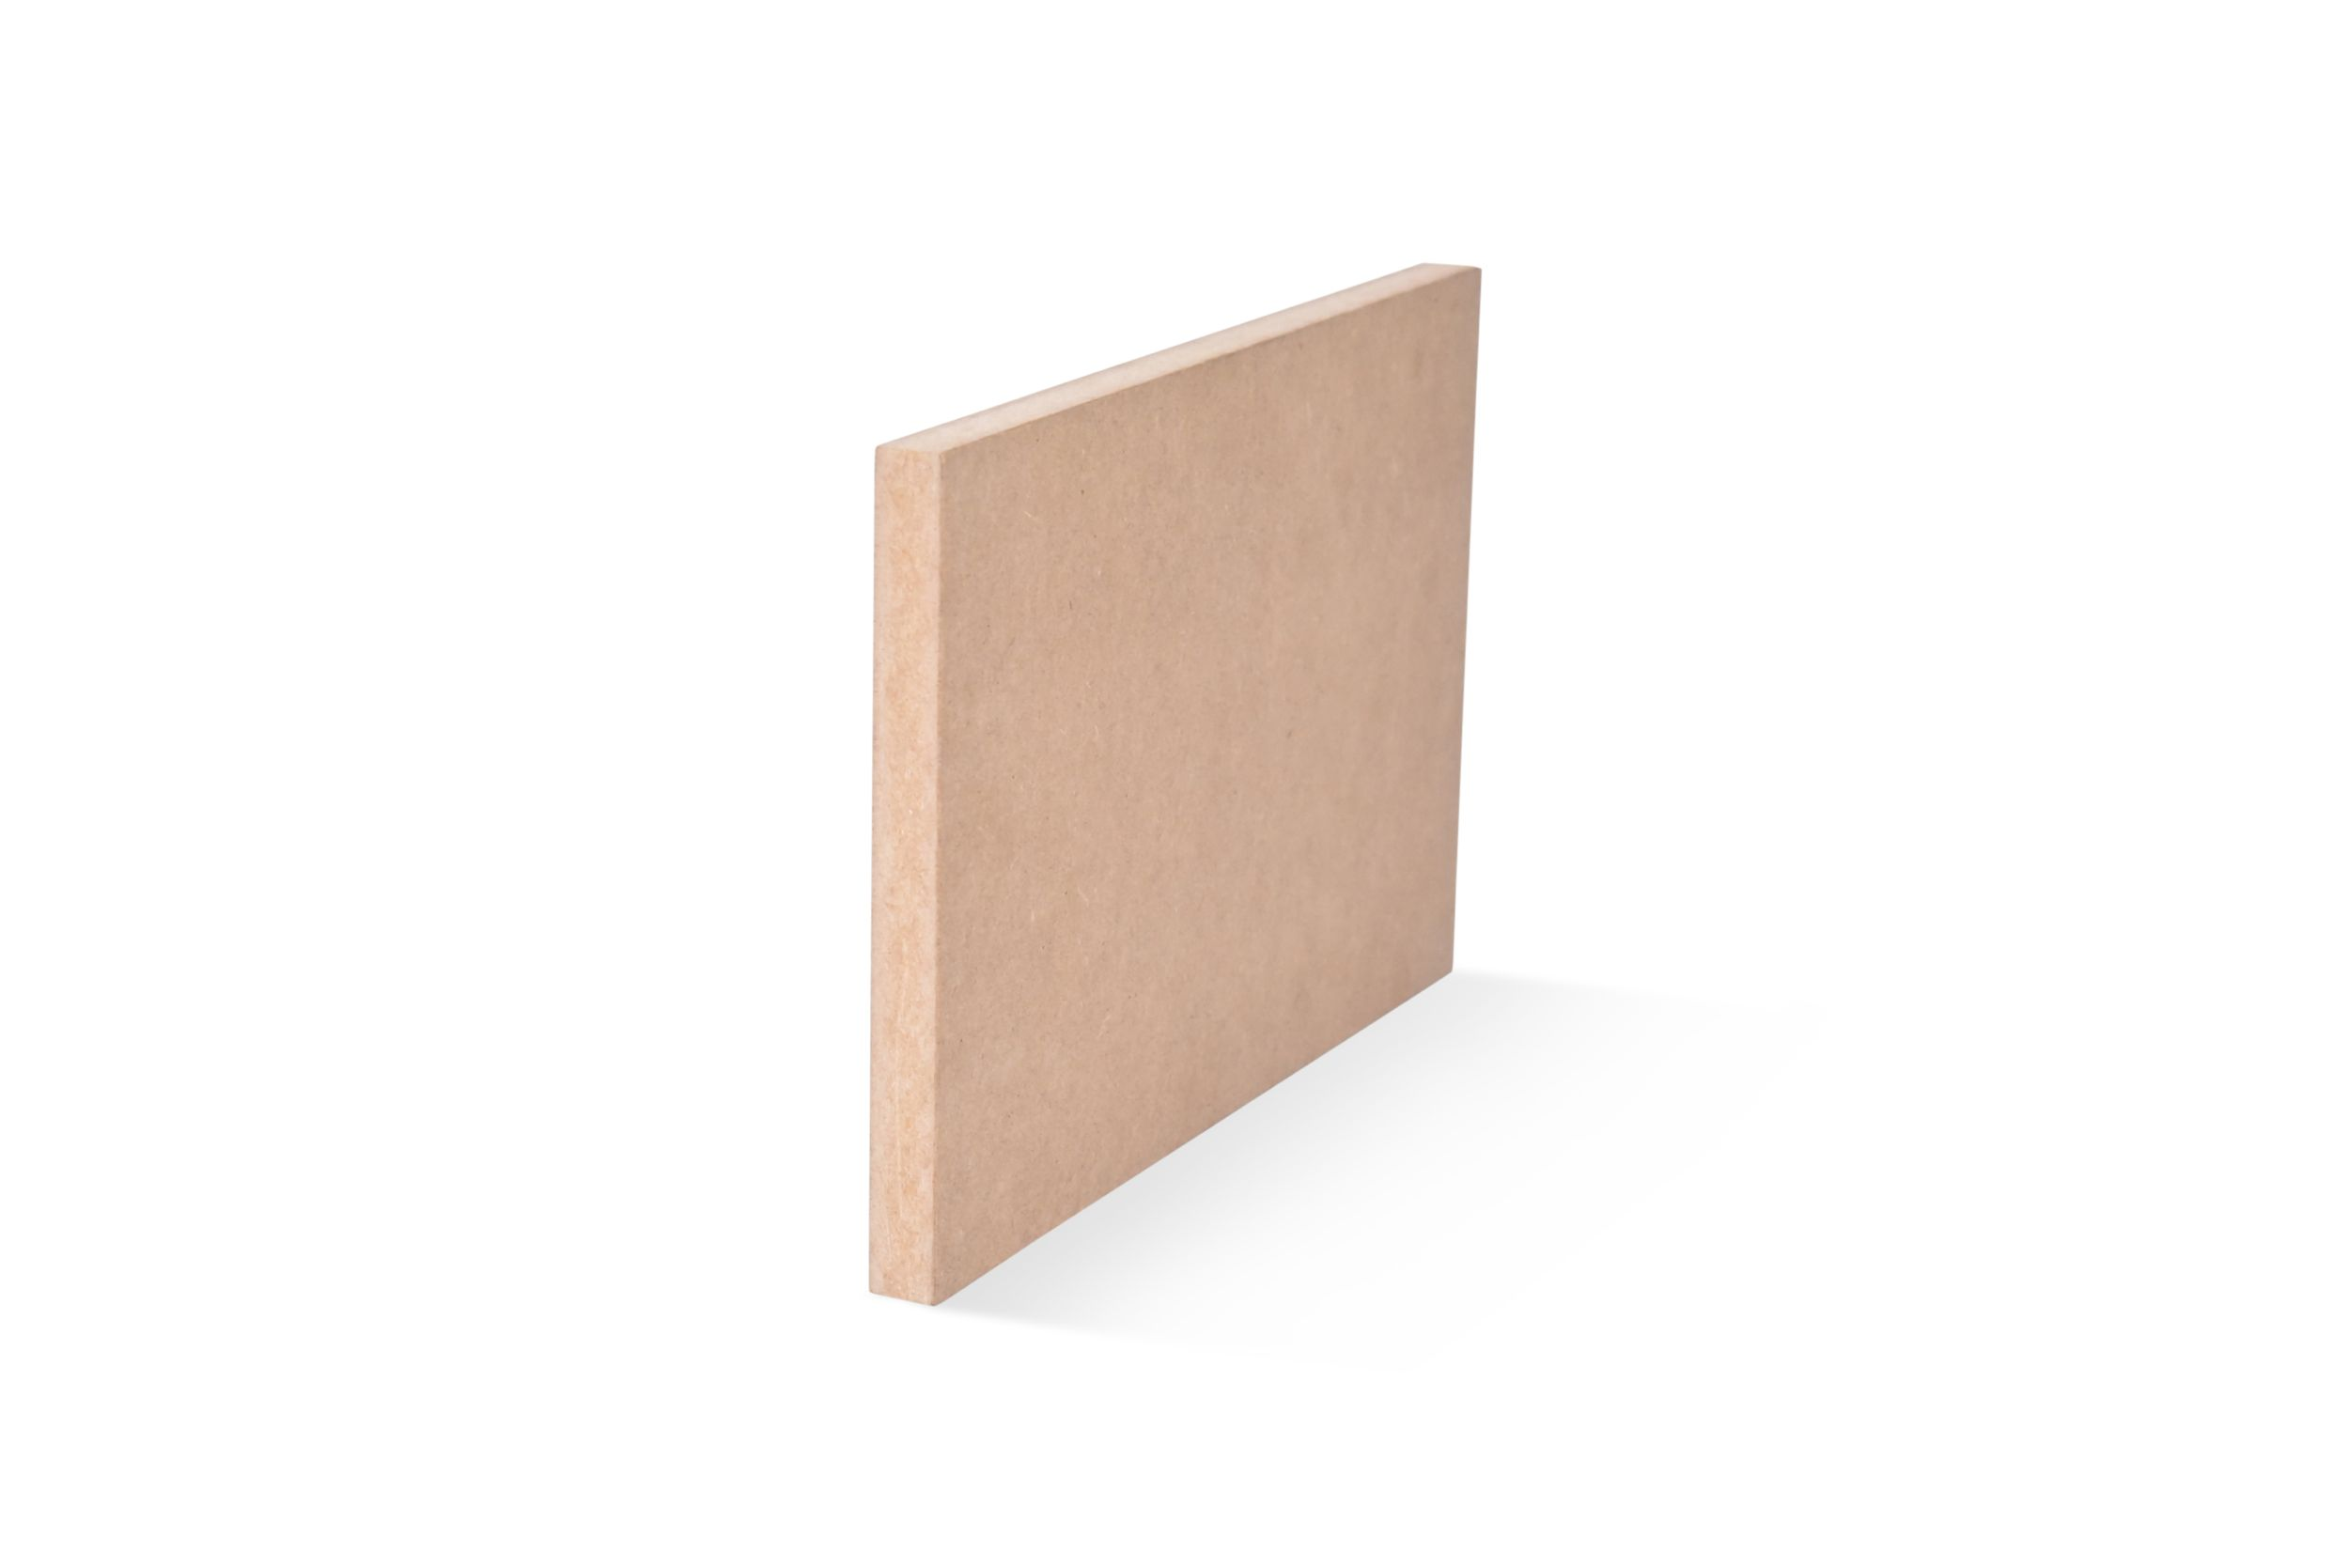 Panneau MDF (Medium Density Fiberboard)